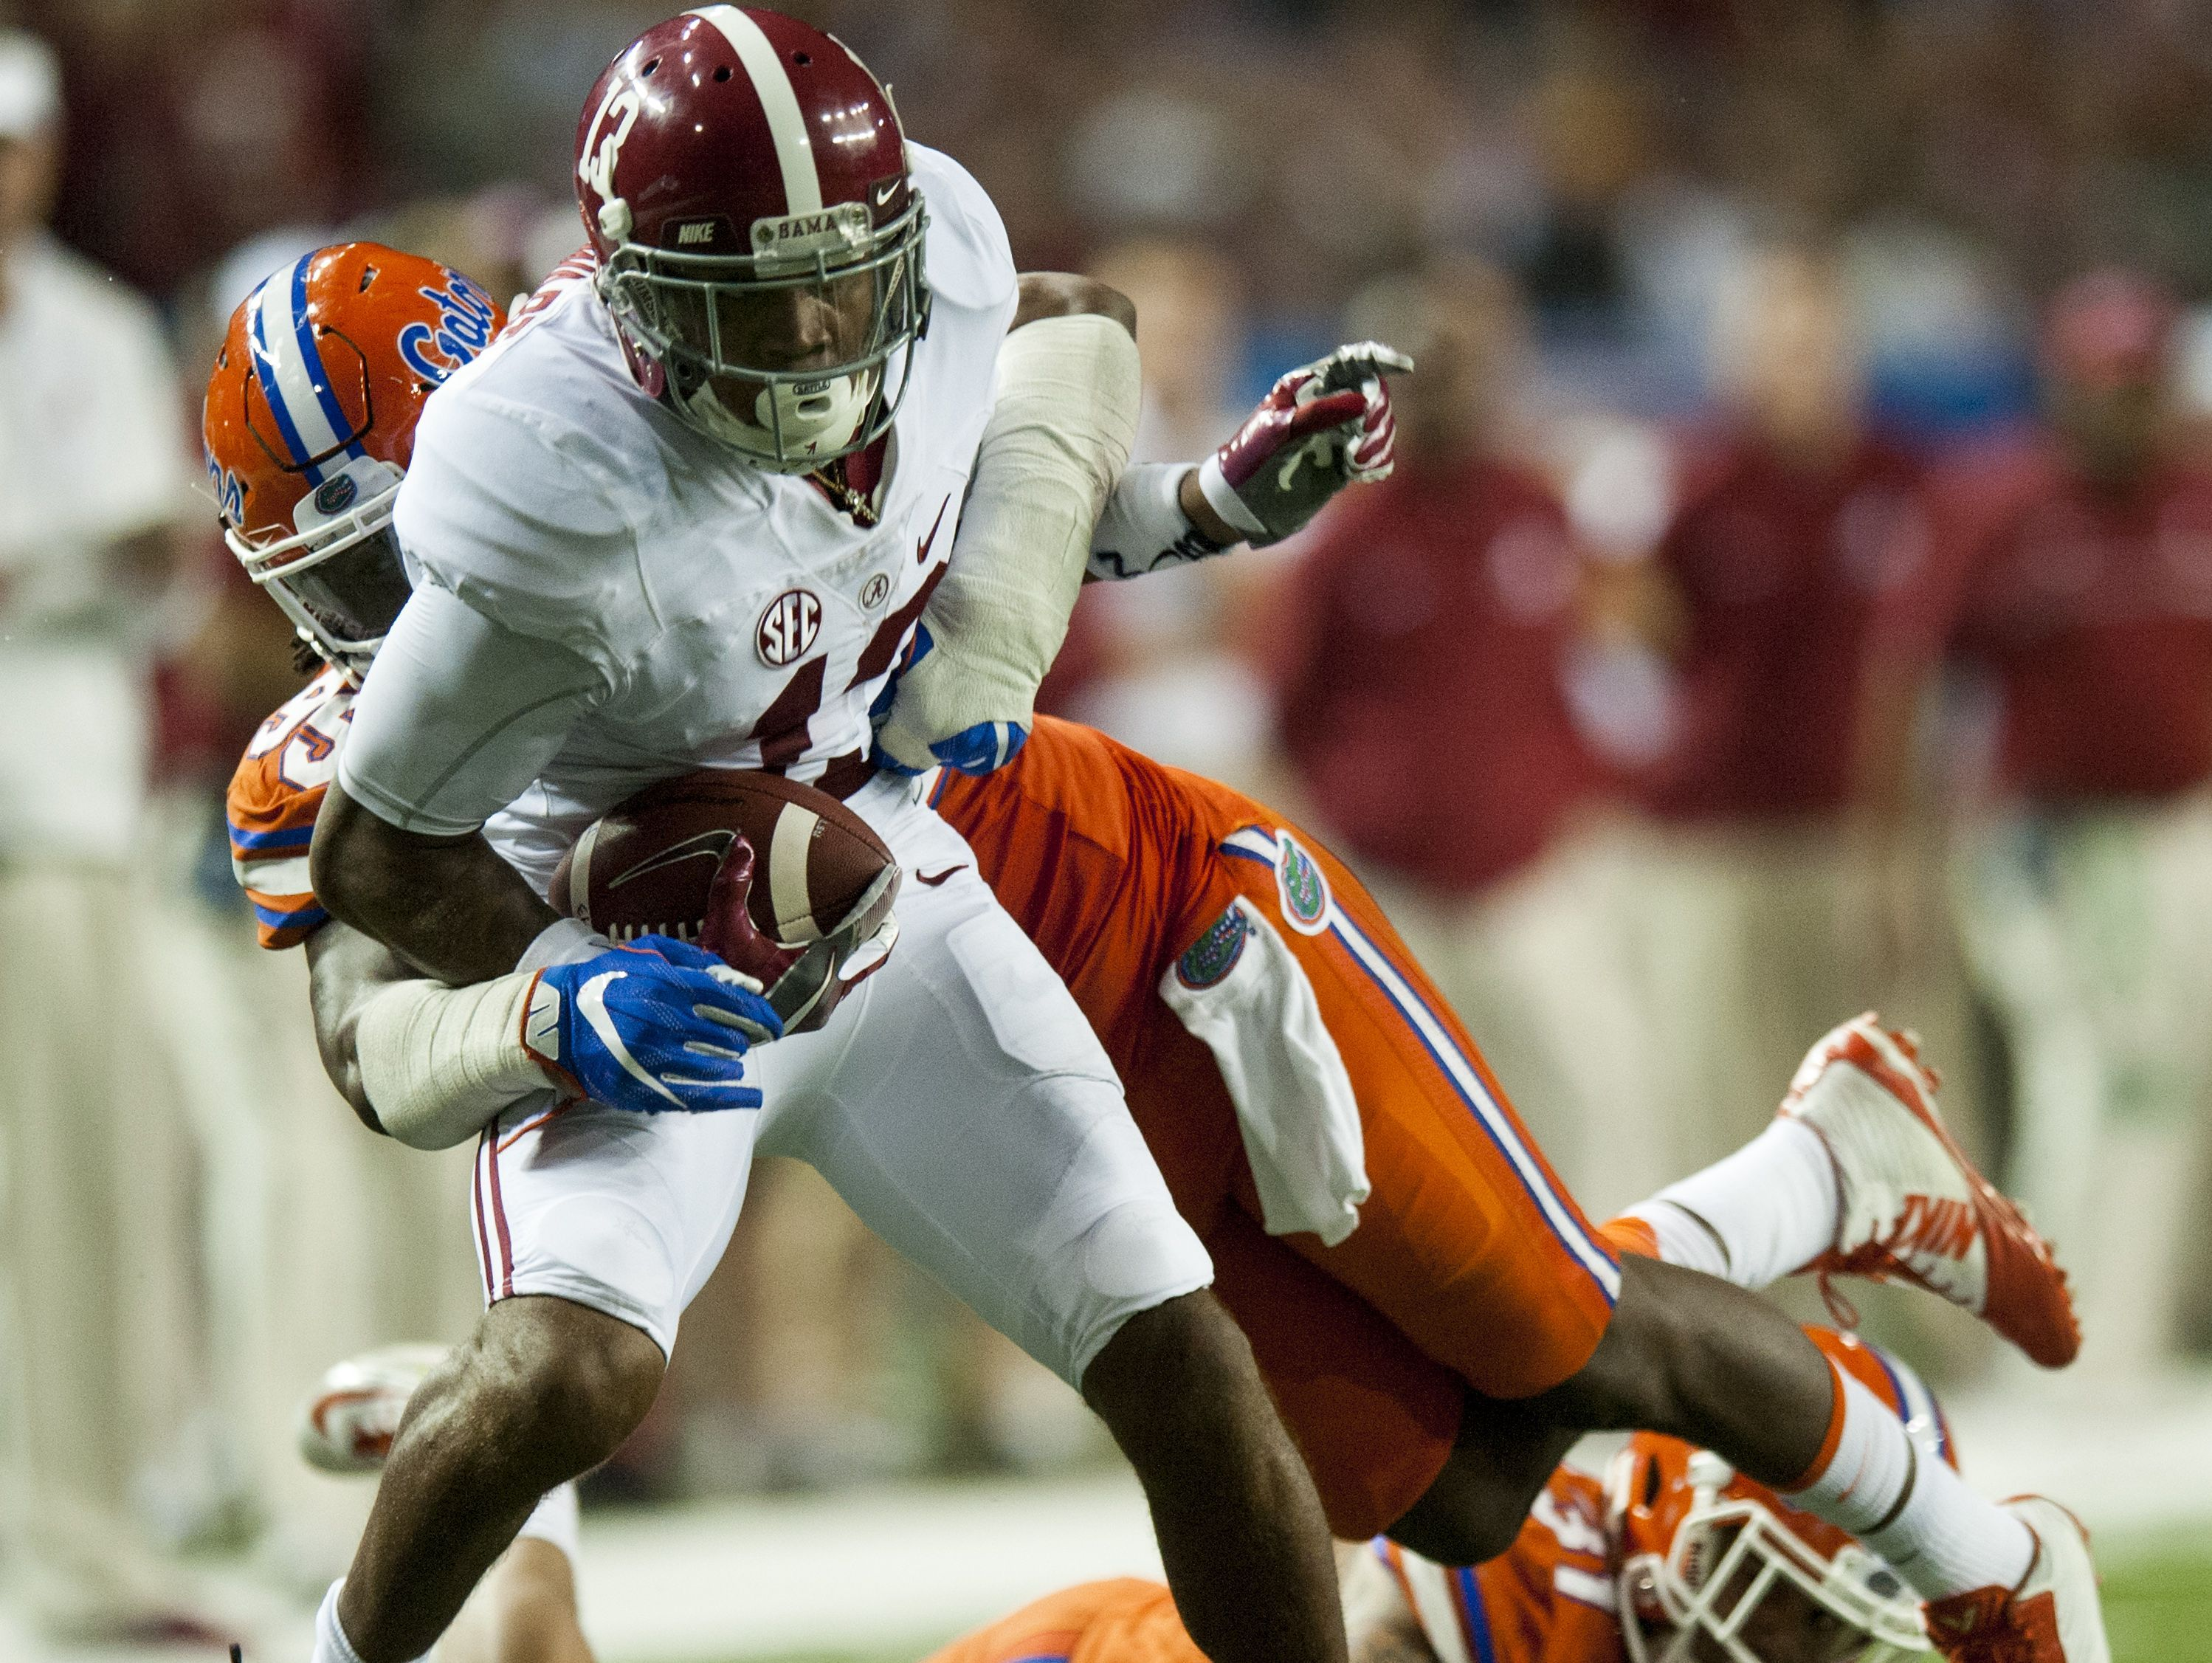 ArDarius Stewart (13) led Alabama in receiving yards (864) and receiving touchdowns (7) in the 2016 season.